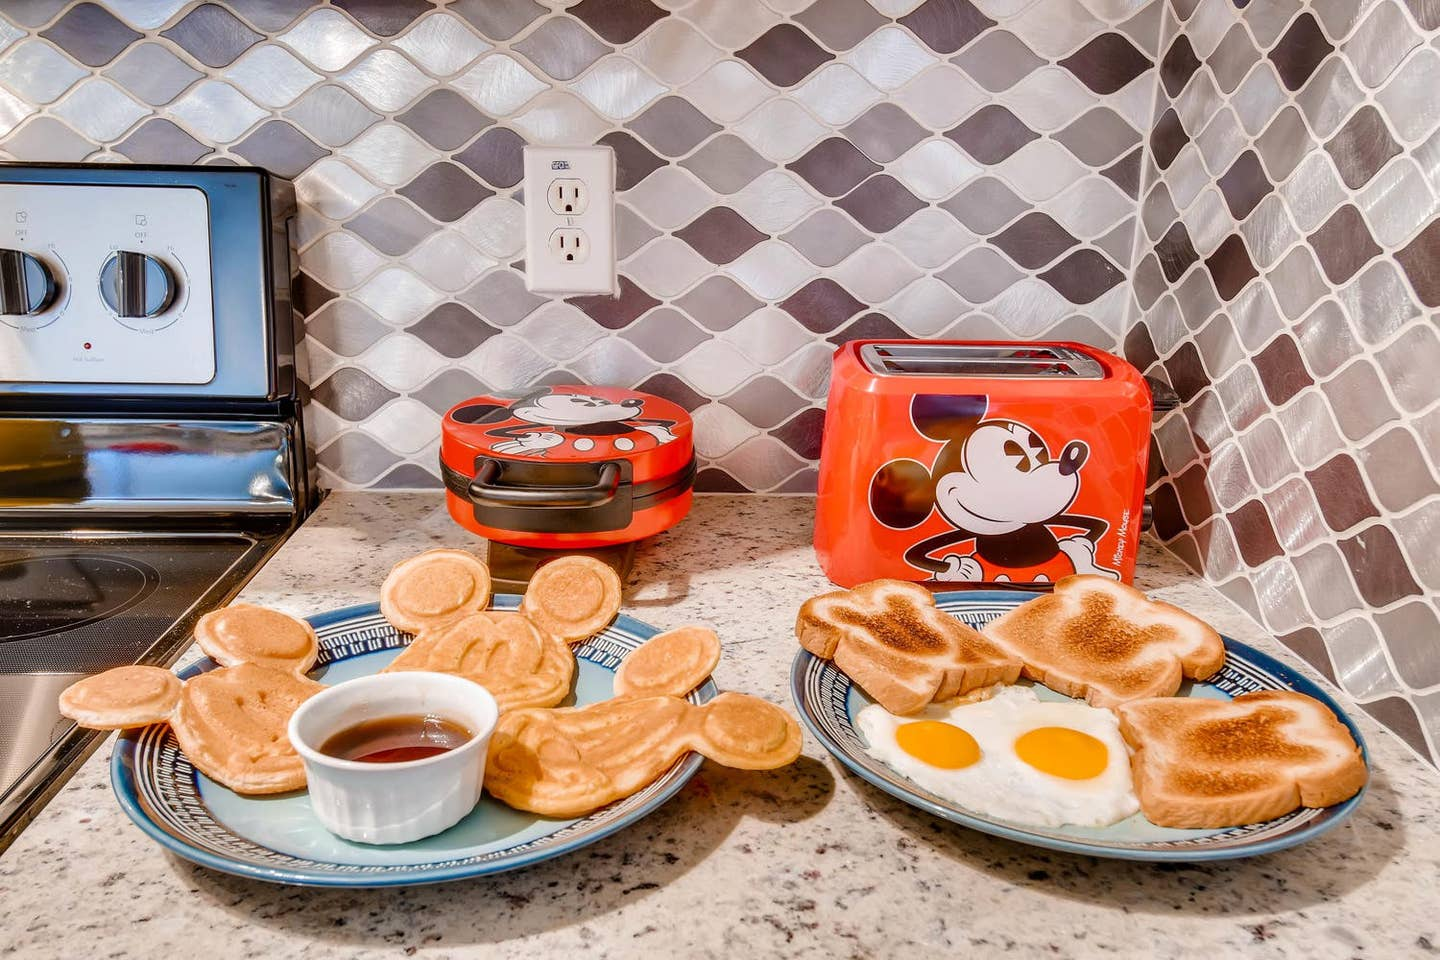 mickey mouse appliances airbnb kissimmee fl